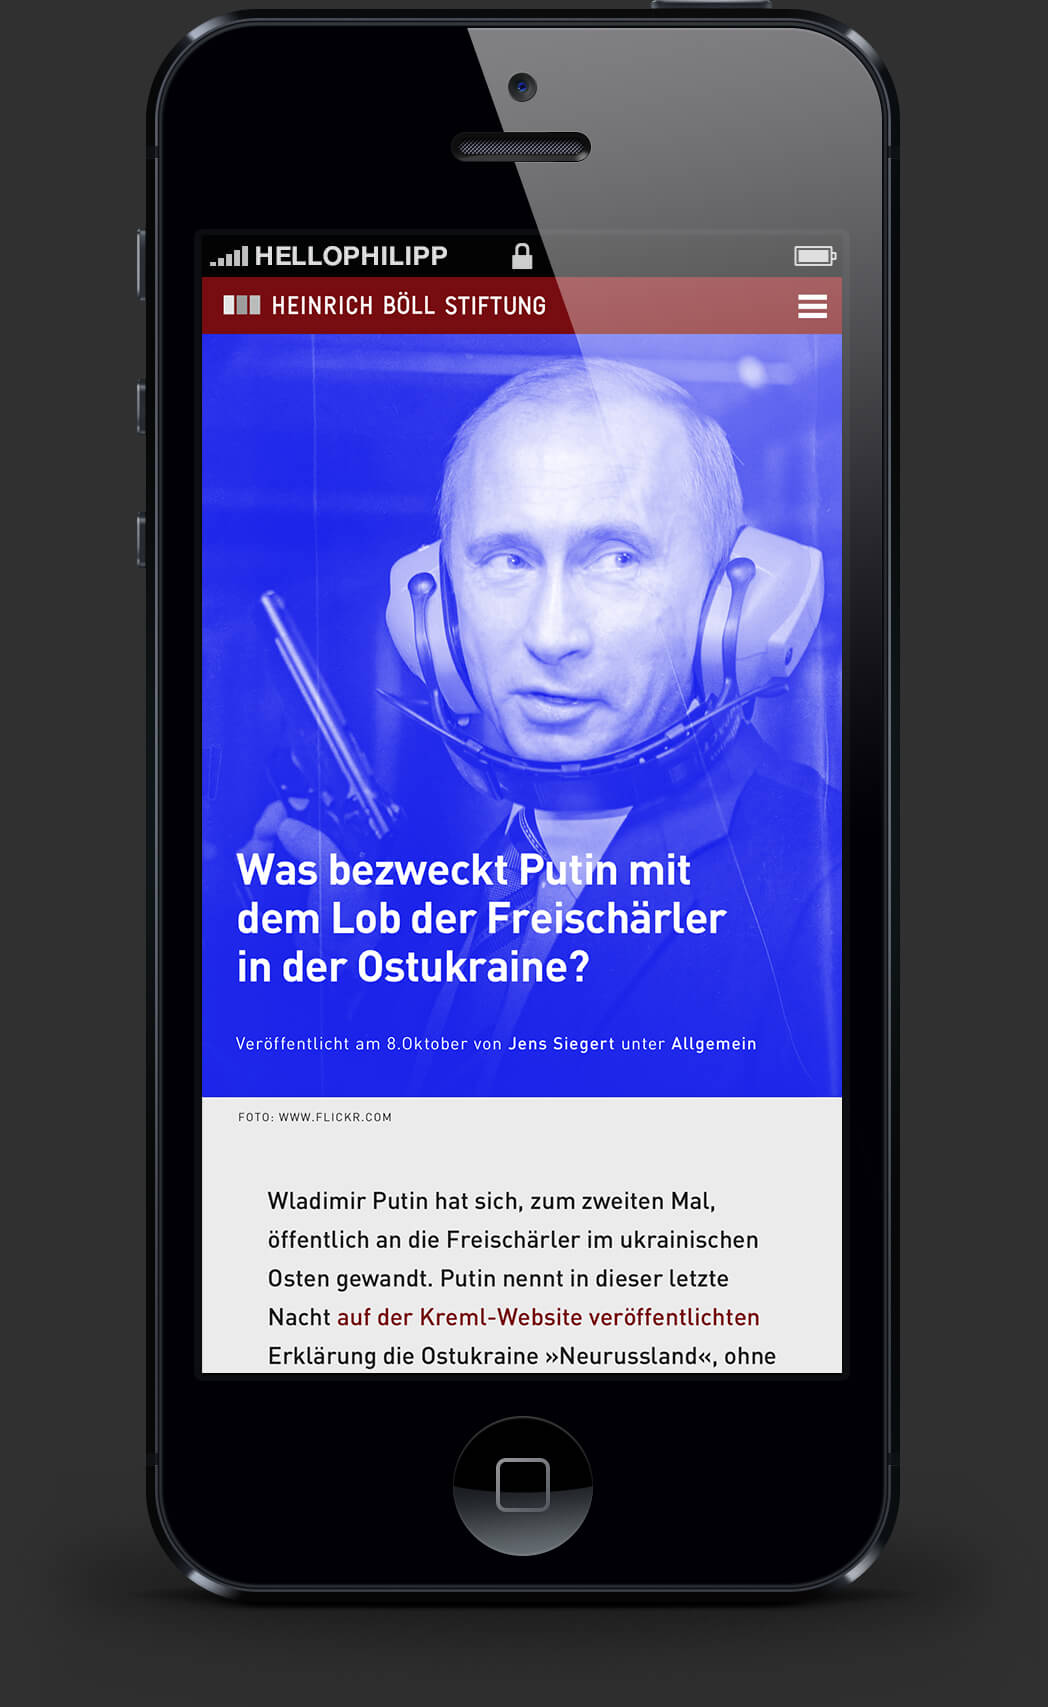 boell_article_mobile_1